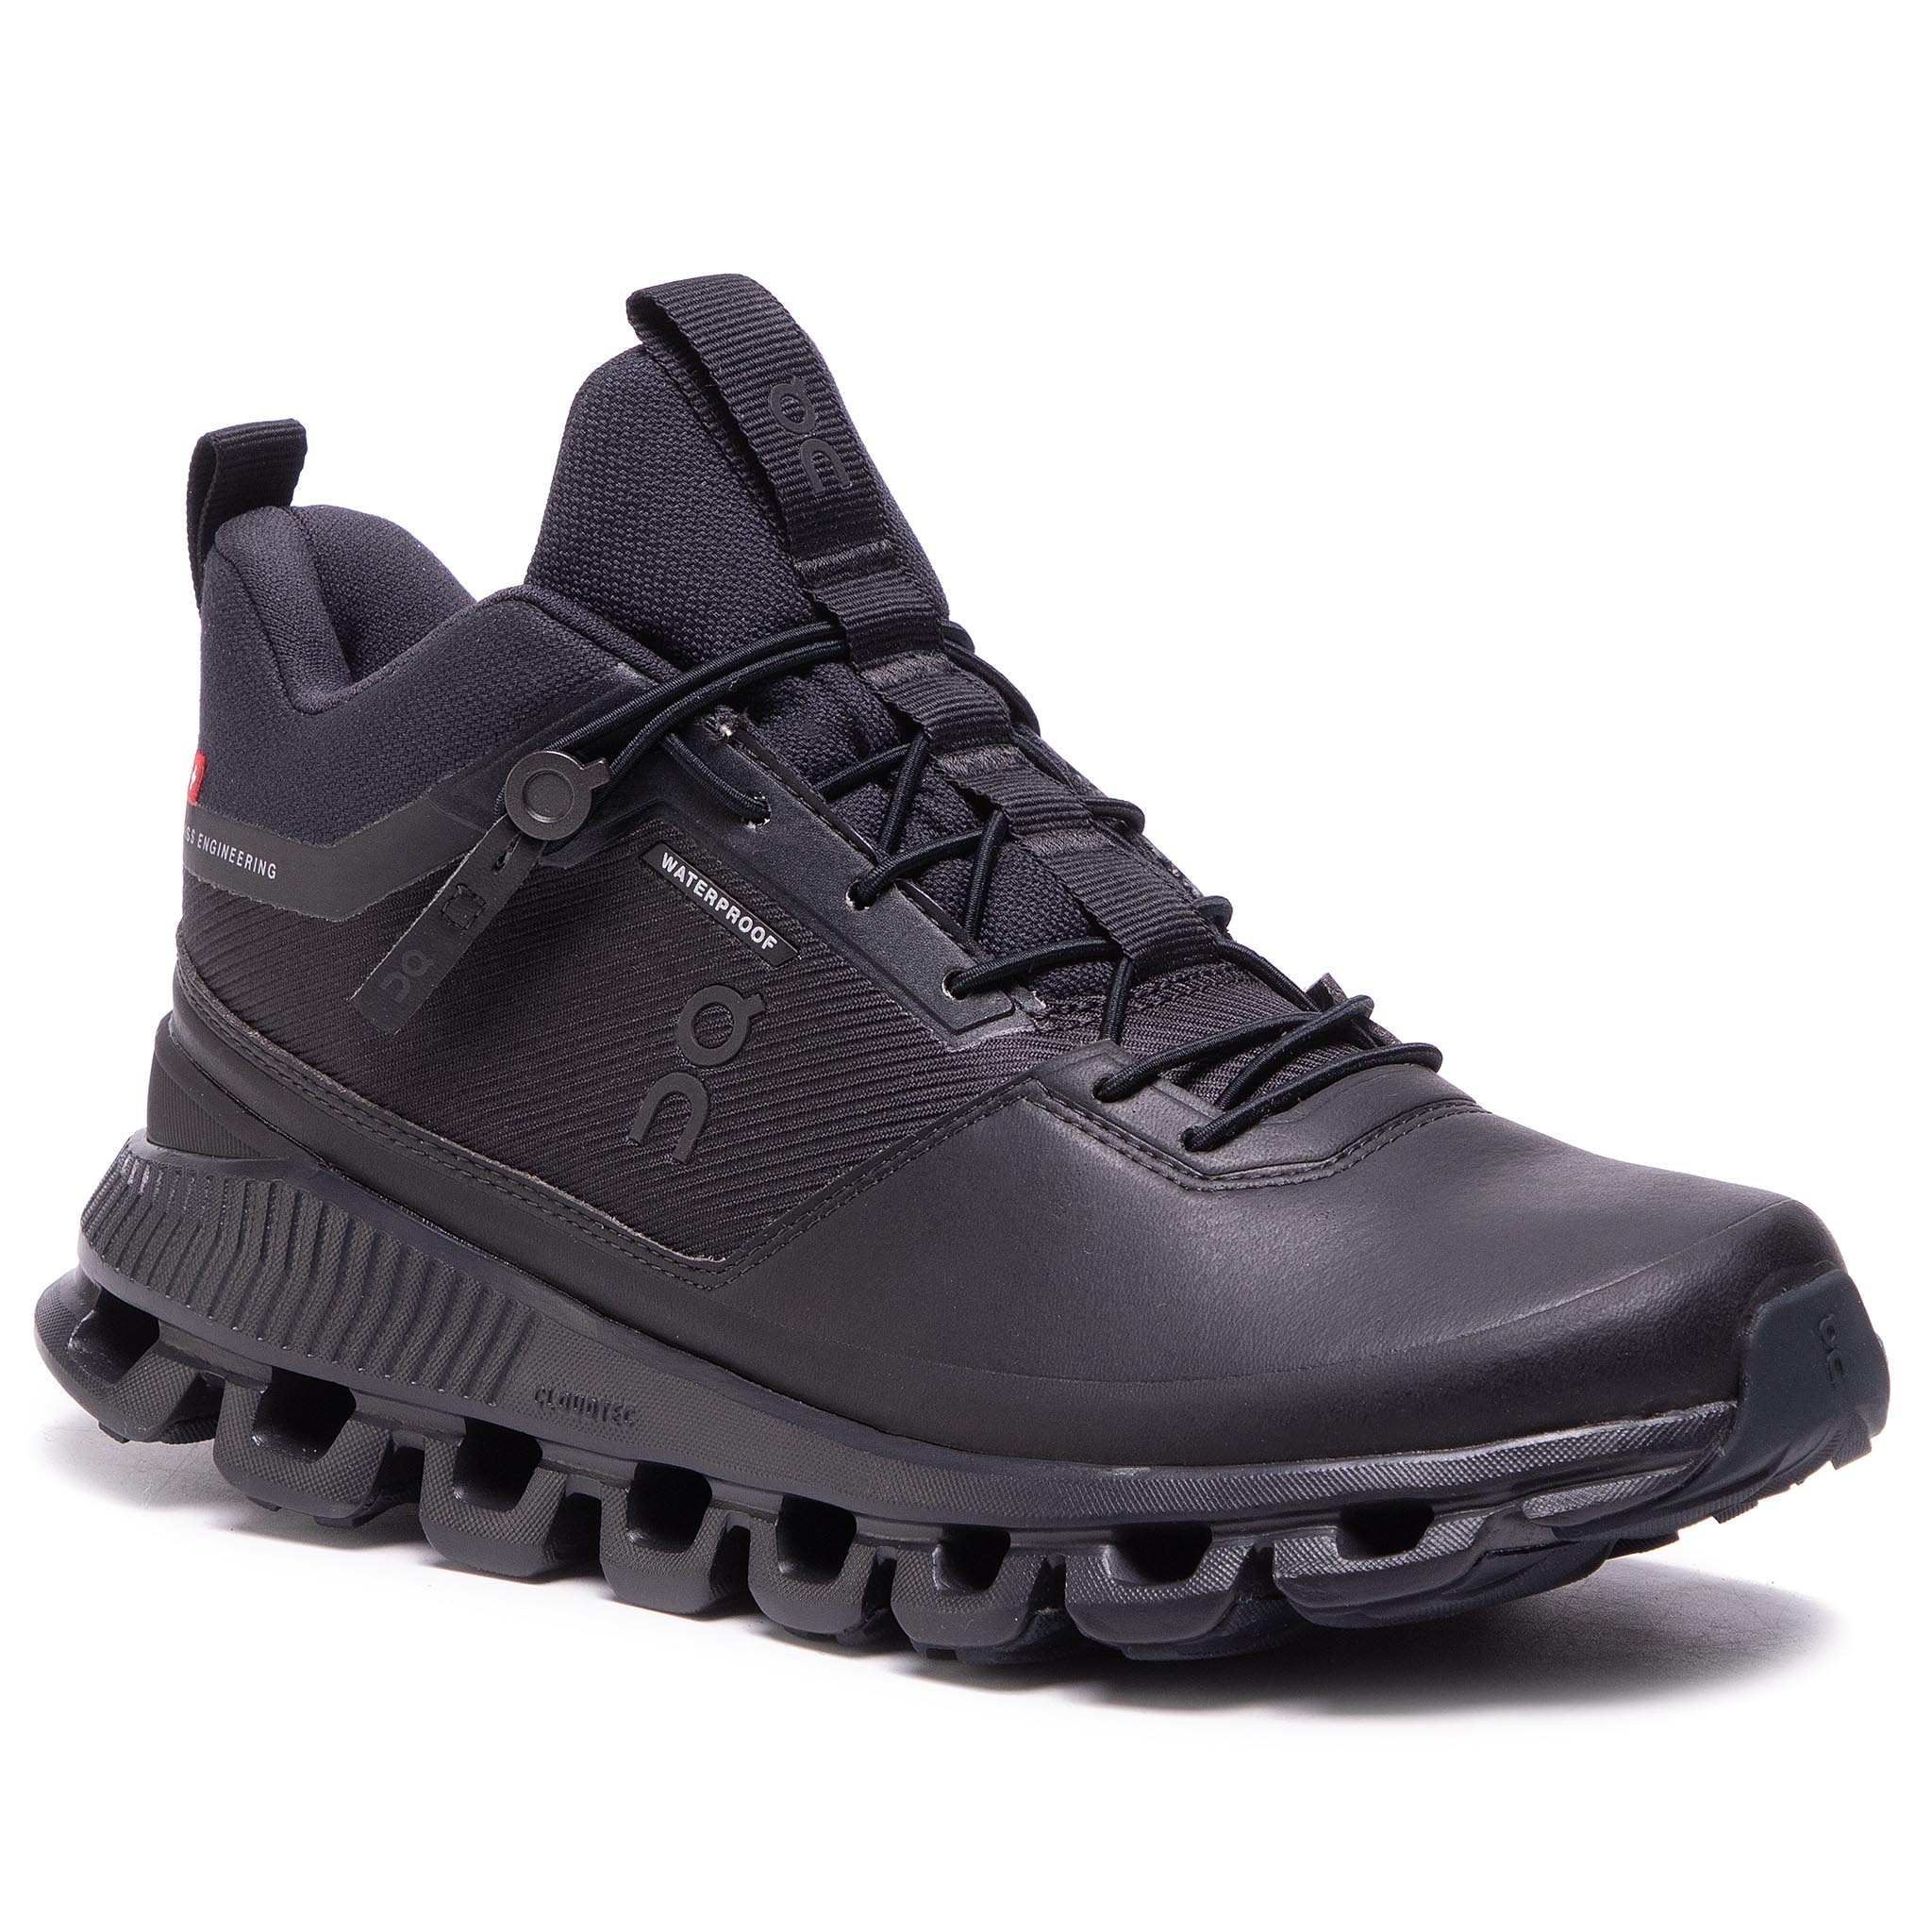 Image of Sneakers ON - Cloud Hi Waterproof 2899672 All Black